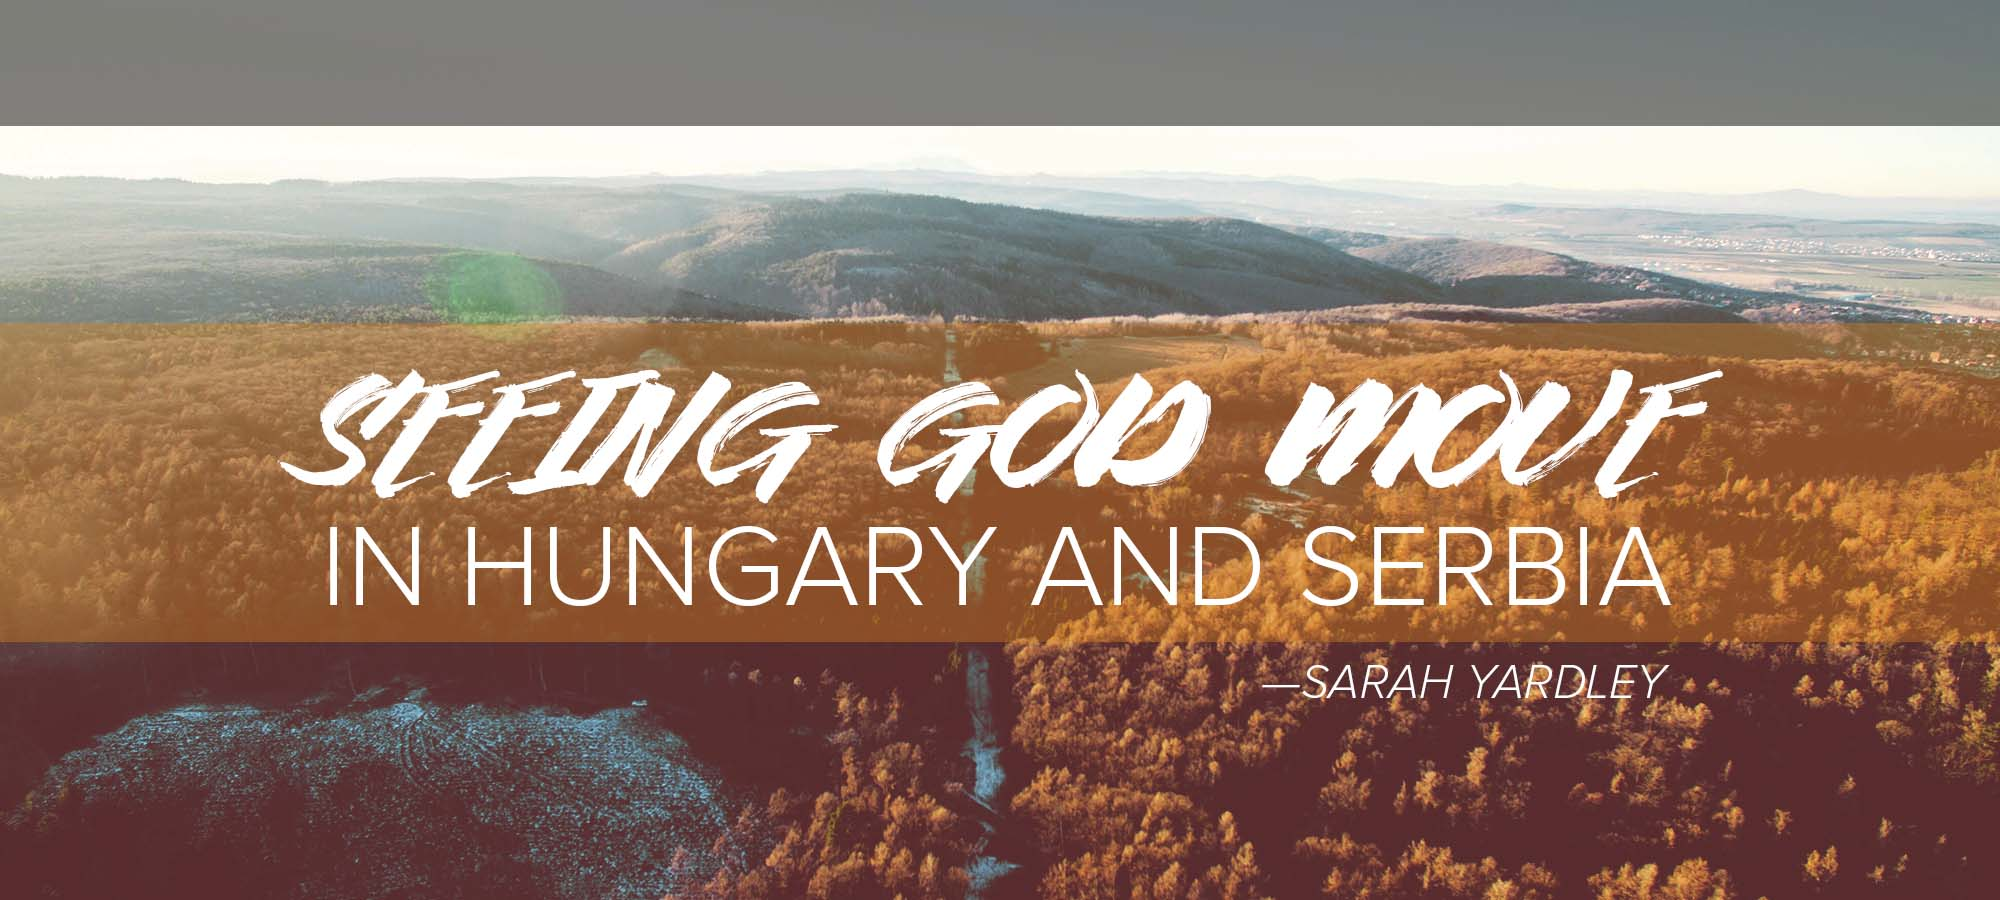 Seeing God Move in Hungary and Serbia